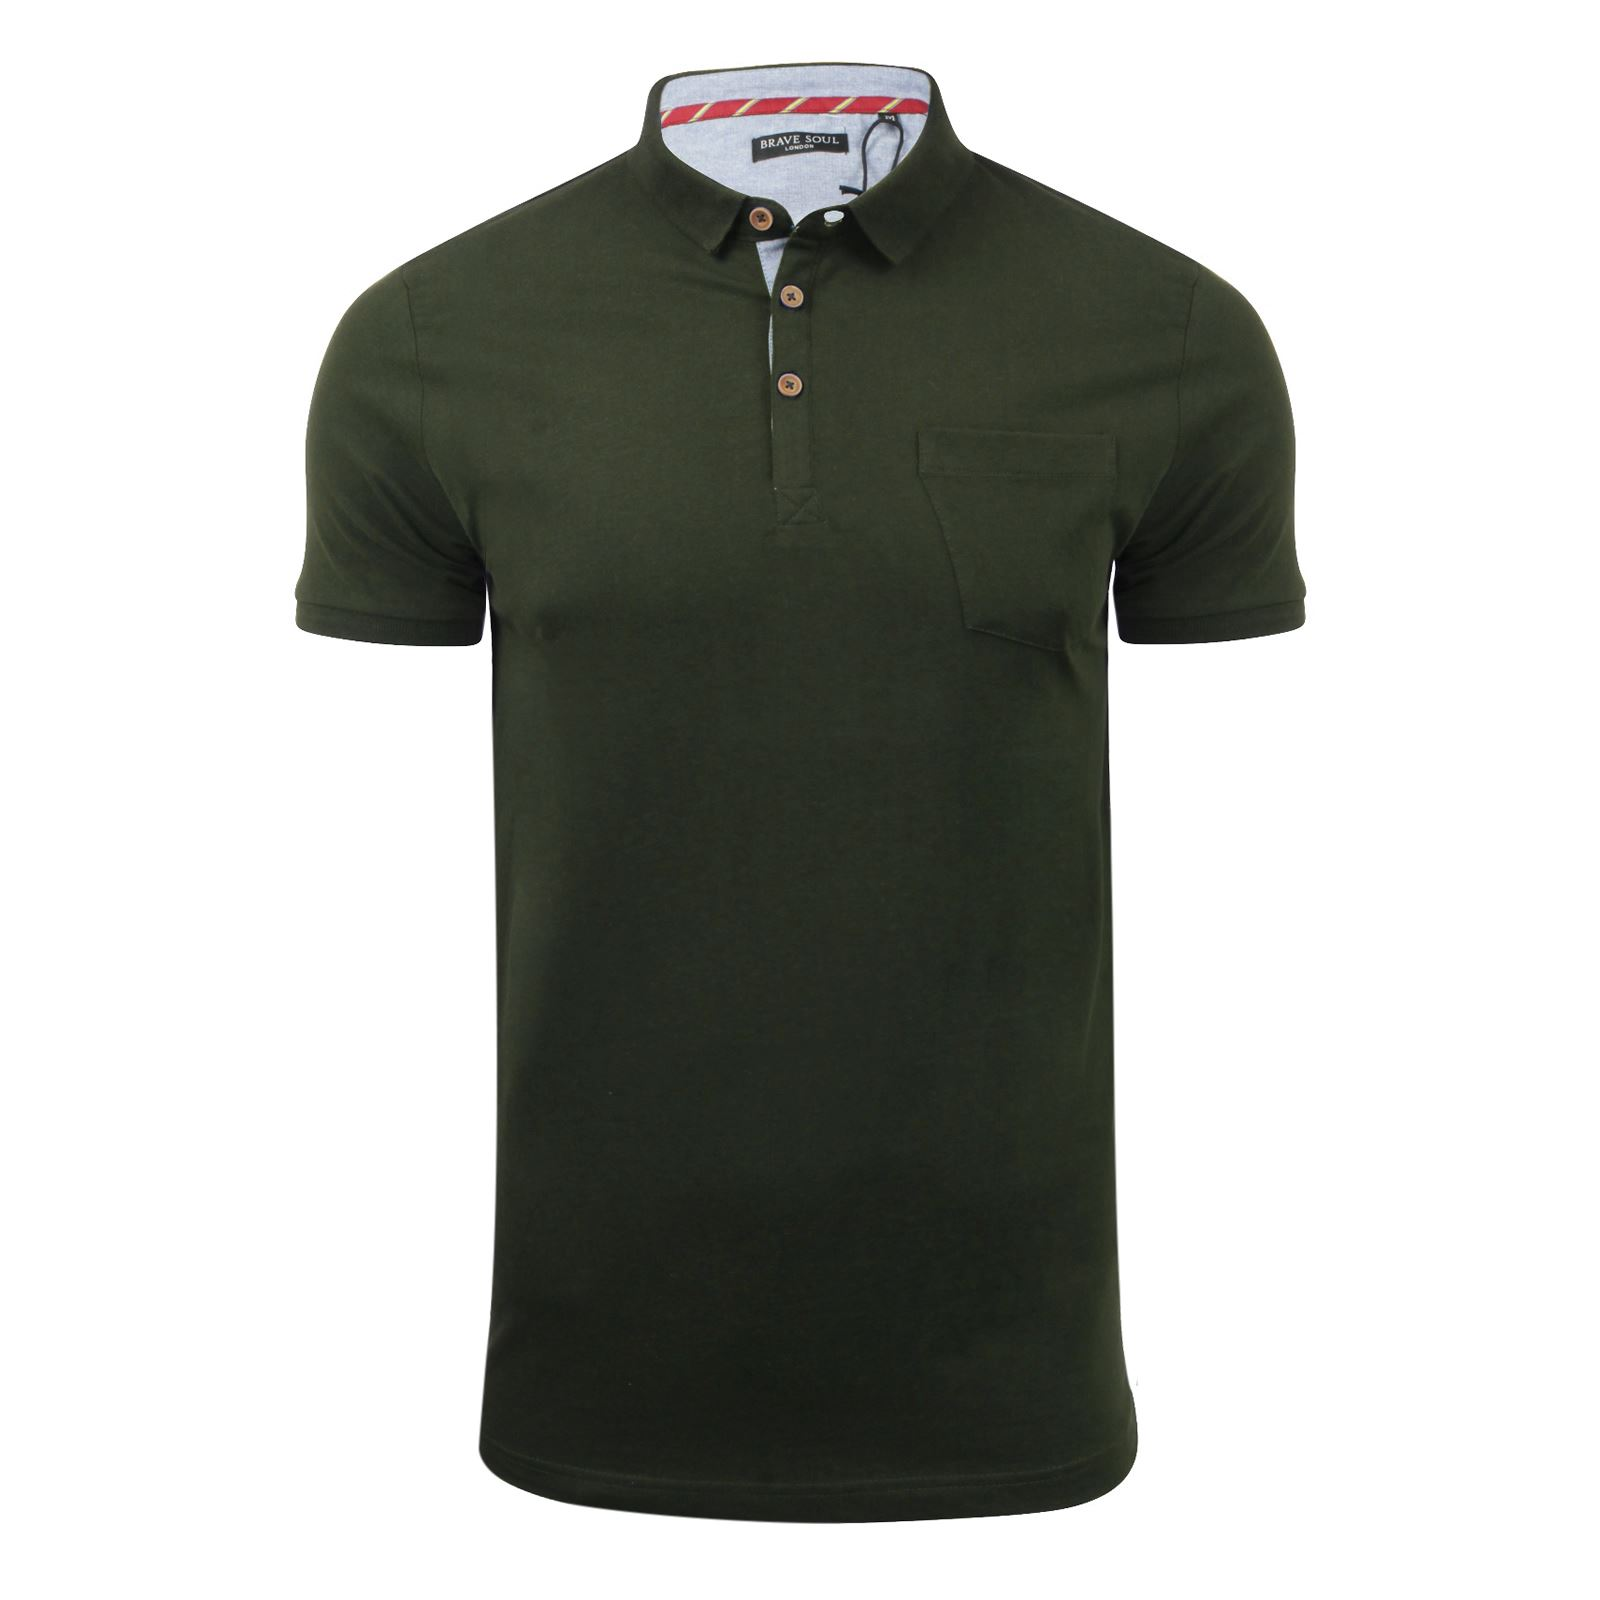 Brave-Soul-Glover-Mens-Polo-T-Shirt-Cotton-Collared-Short-Sleeve-Casual-Top thumbnail 67